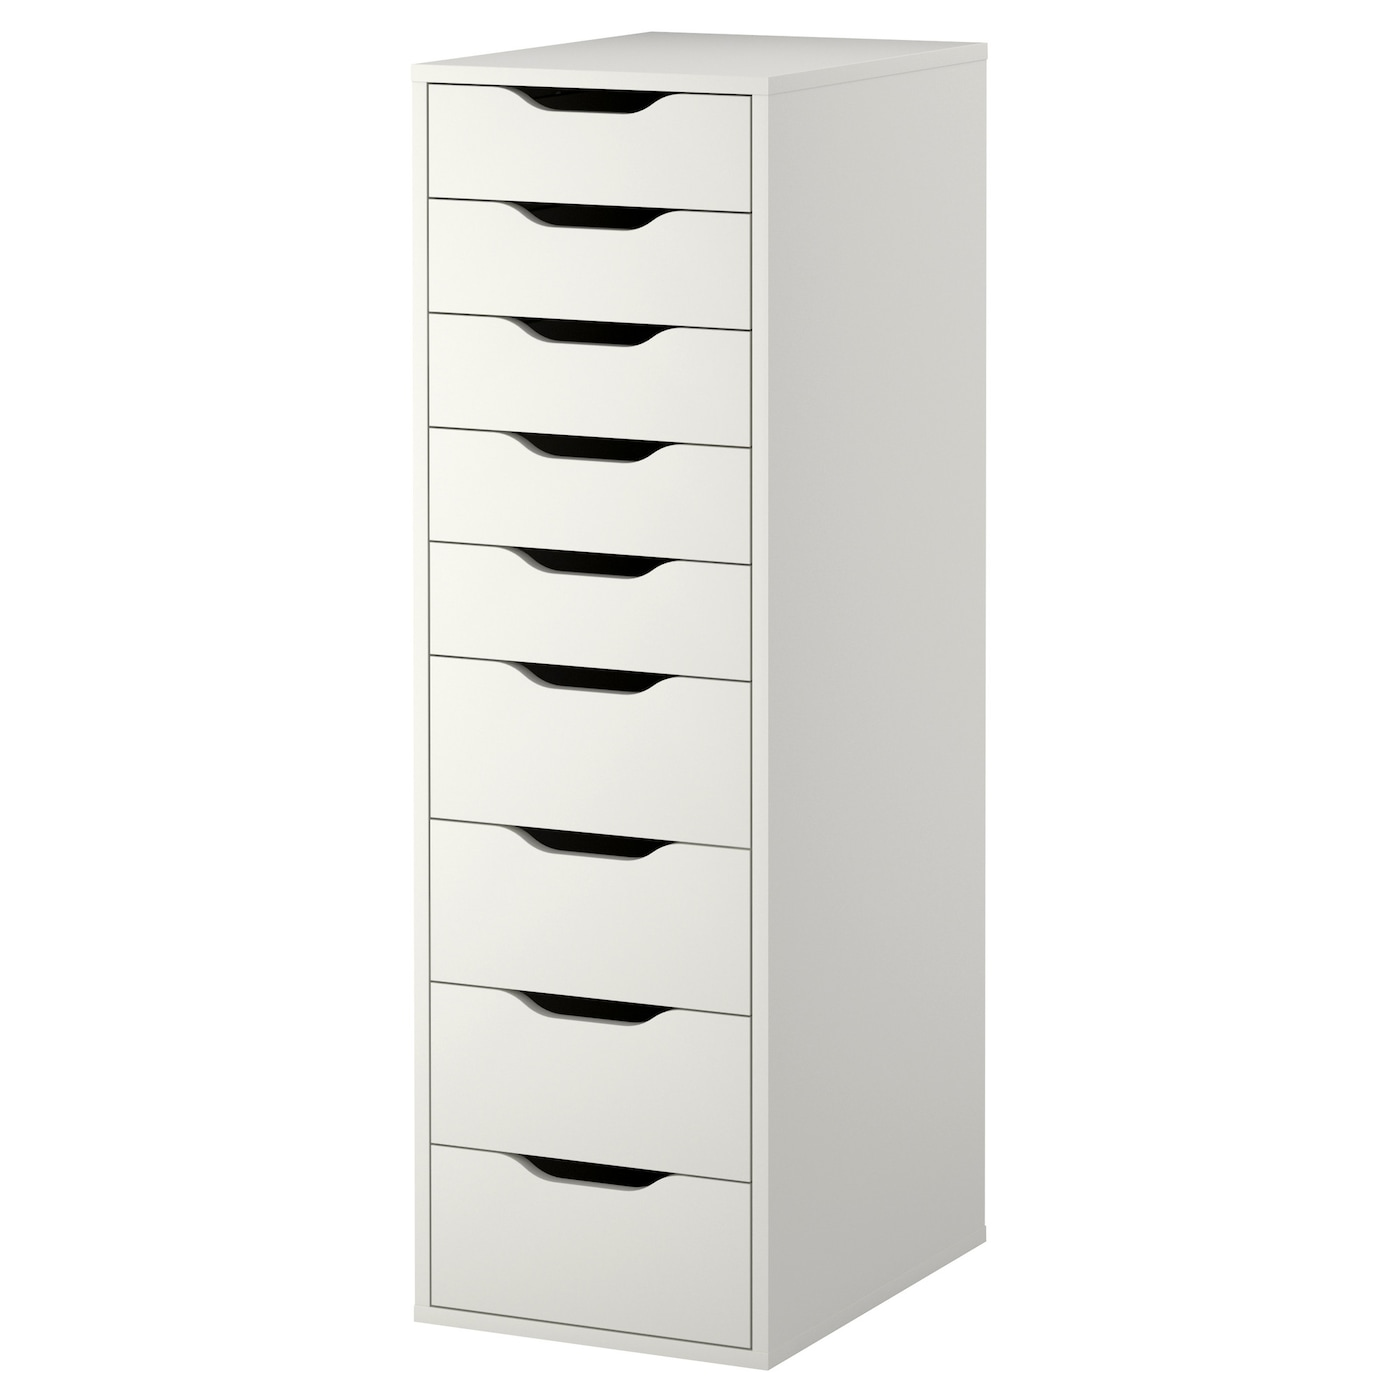 ikea alex cabinet alex drawer unit with 9 drawers white 36 x 116 cm ikea 17517